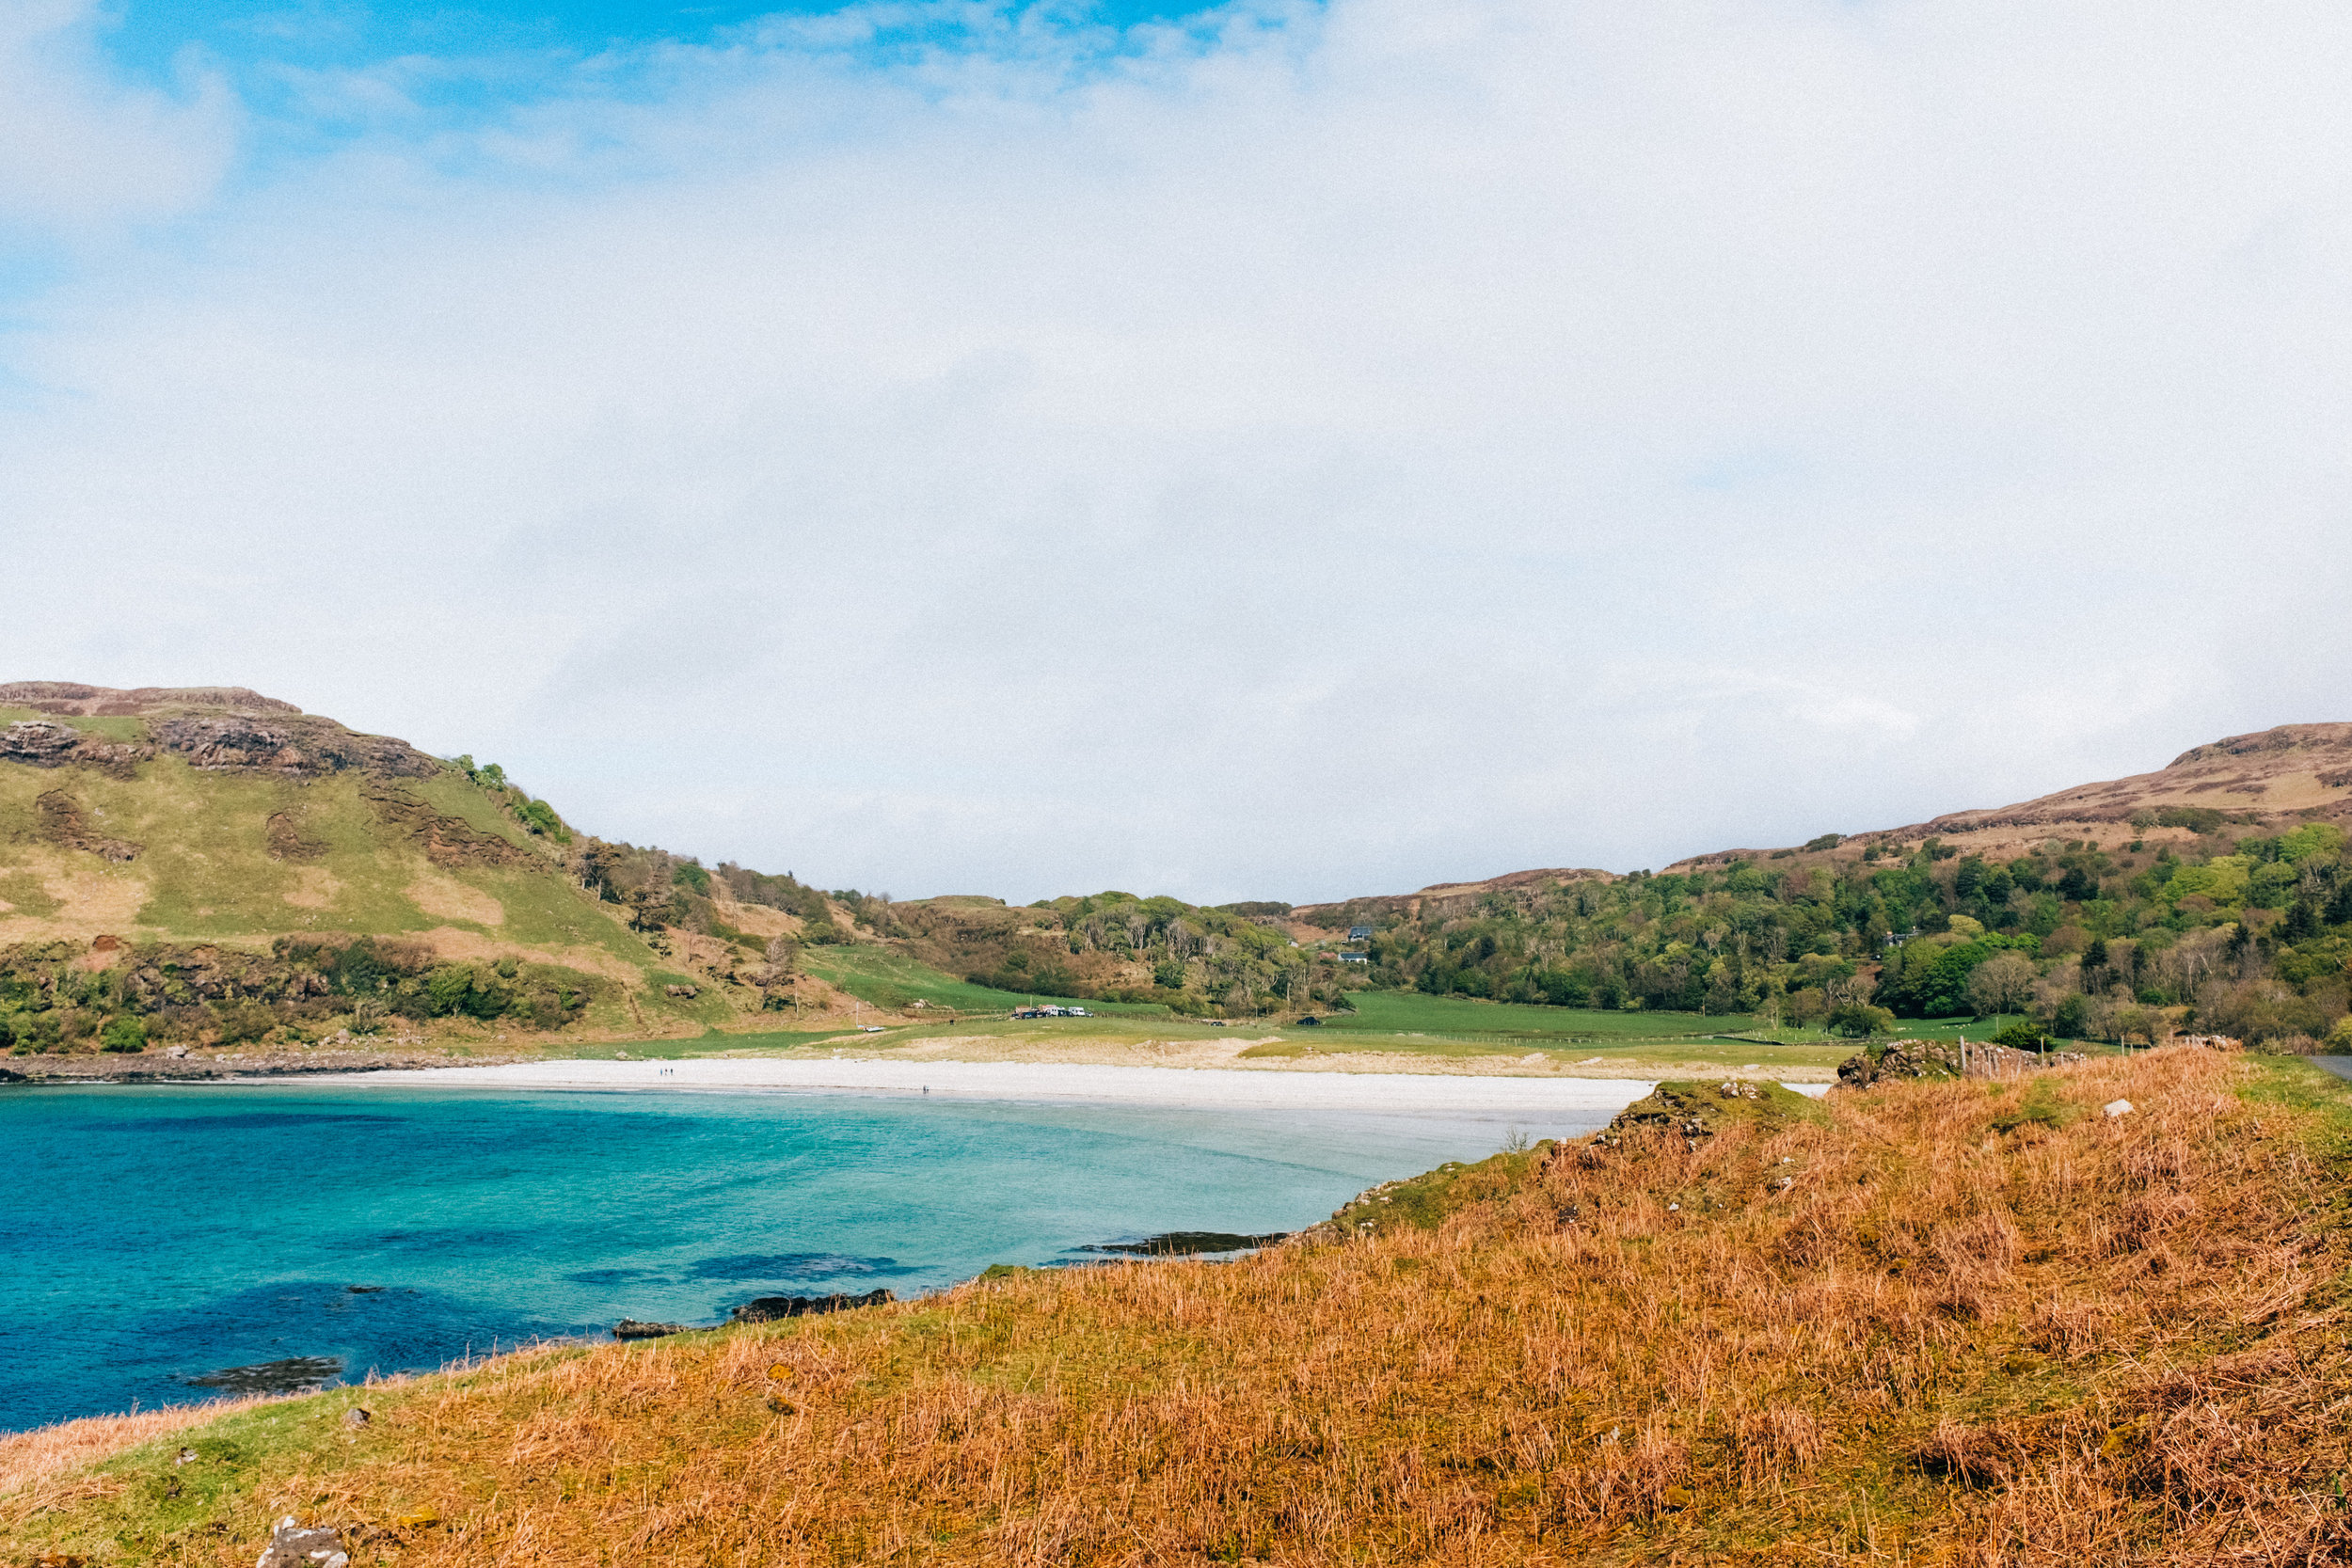 Calgary Bay, a white sand beach on Isle of Mull